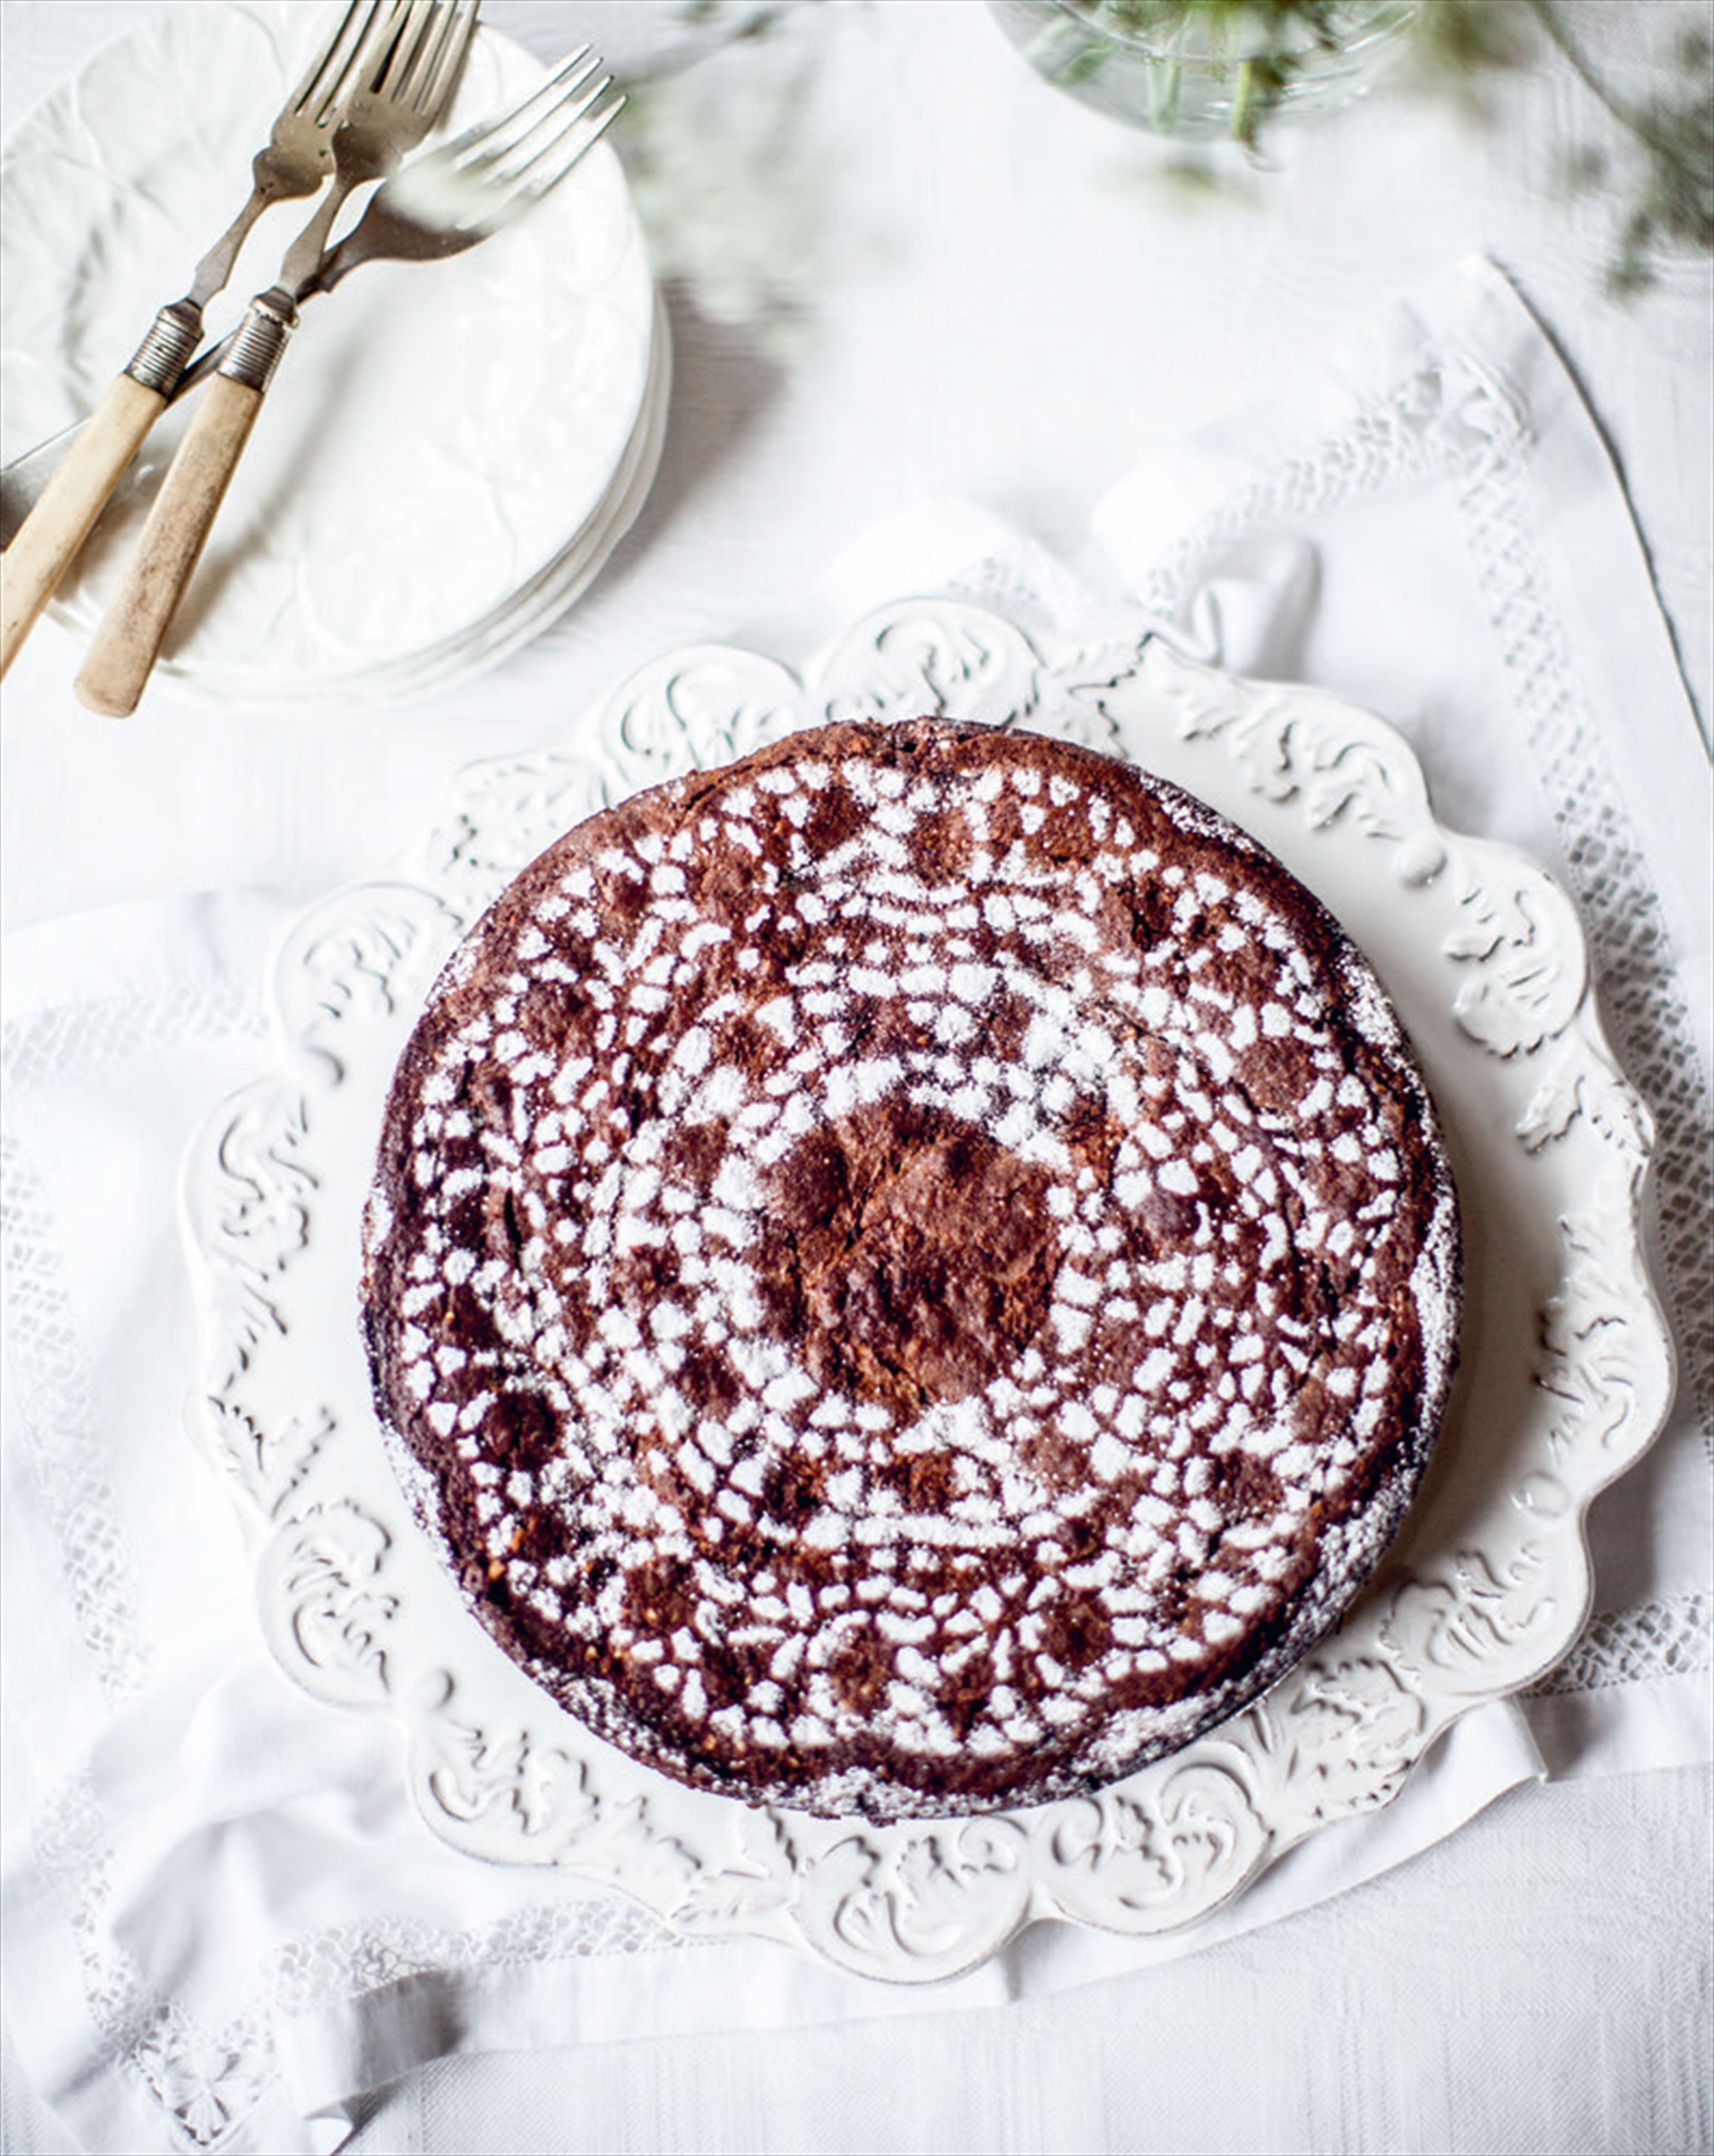 Chocolate & almond cake